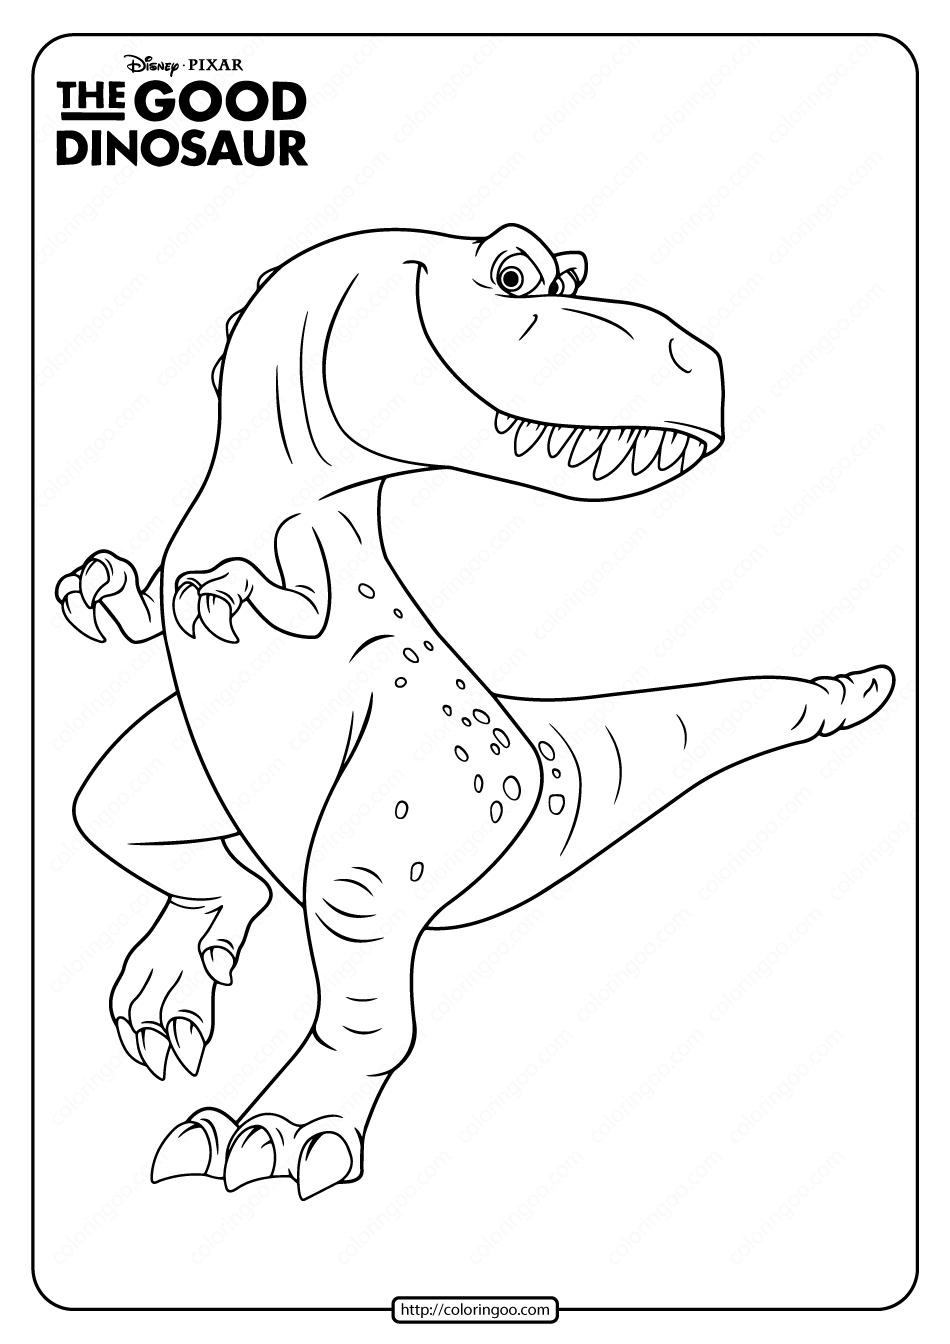 Disney The Good Dinosaur Ramsey Coloring Page Coloring Pages The Good Dinosaur Dinosaur